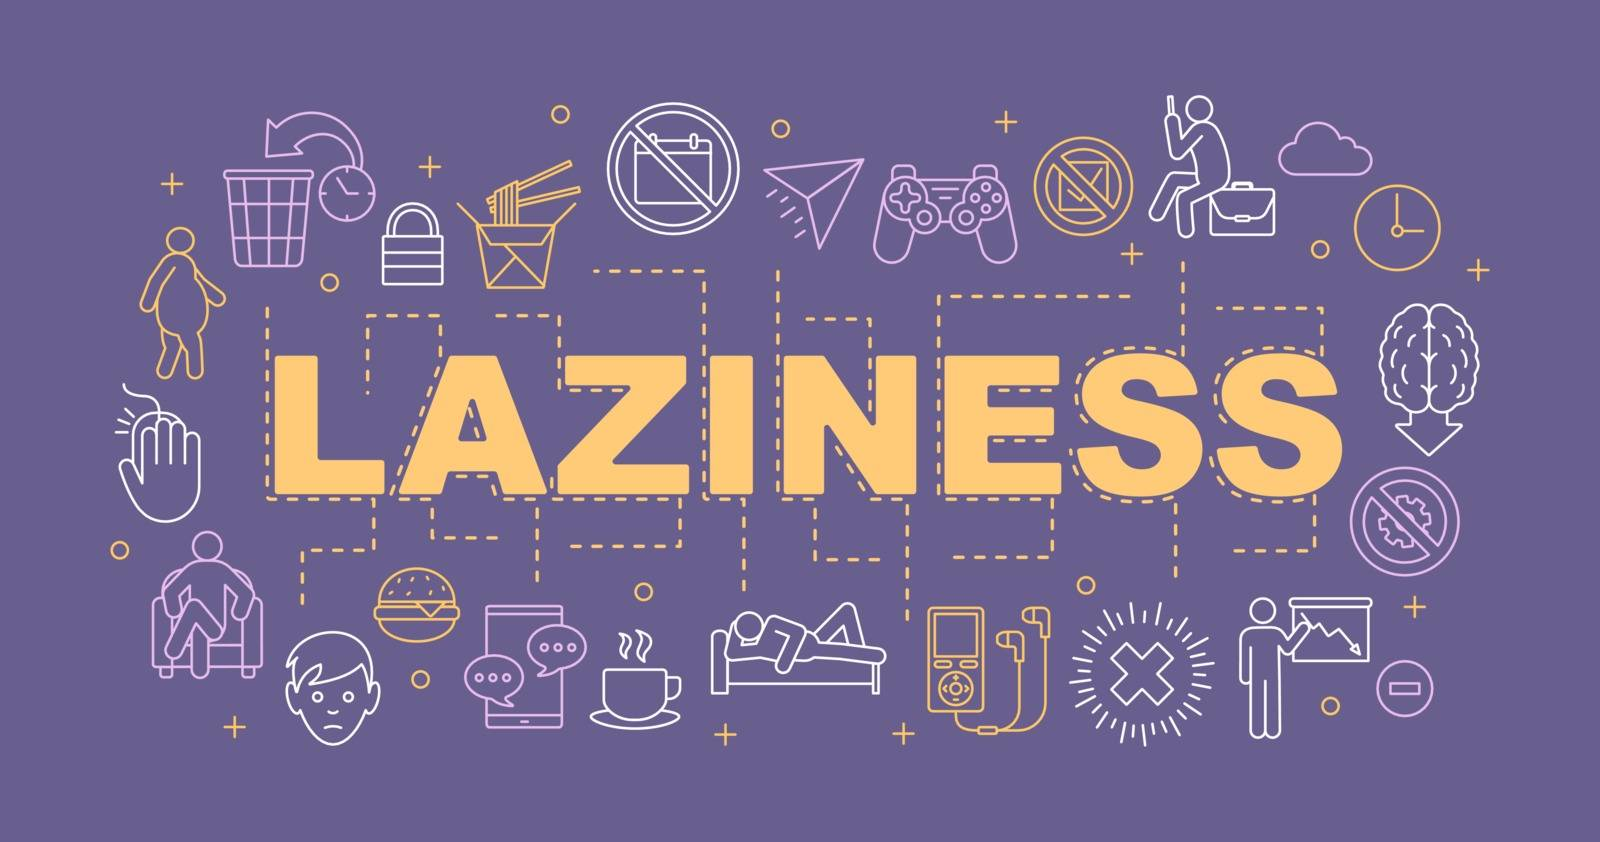 Laziness word concepts banner. Procrastination. Wasting time. Presentation, website. Isolated lettering typography idea with linear icons. Vector outline illustration